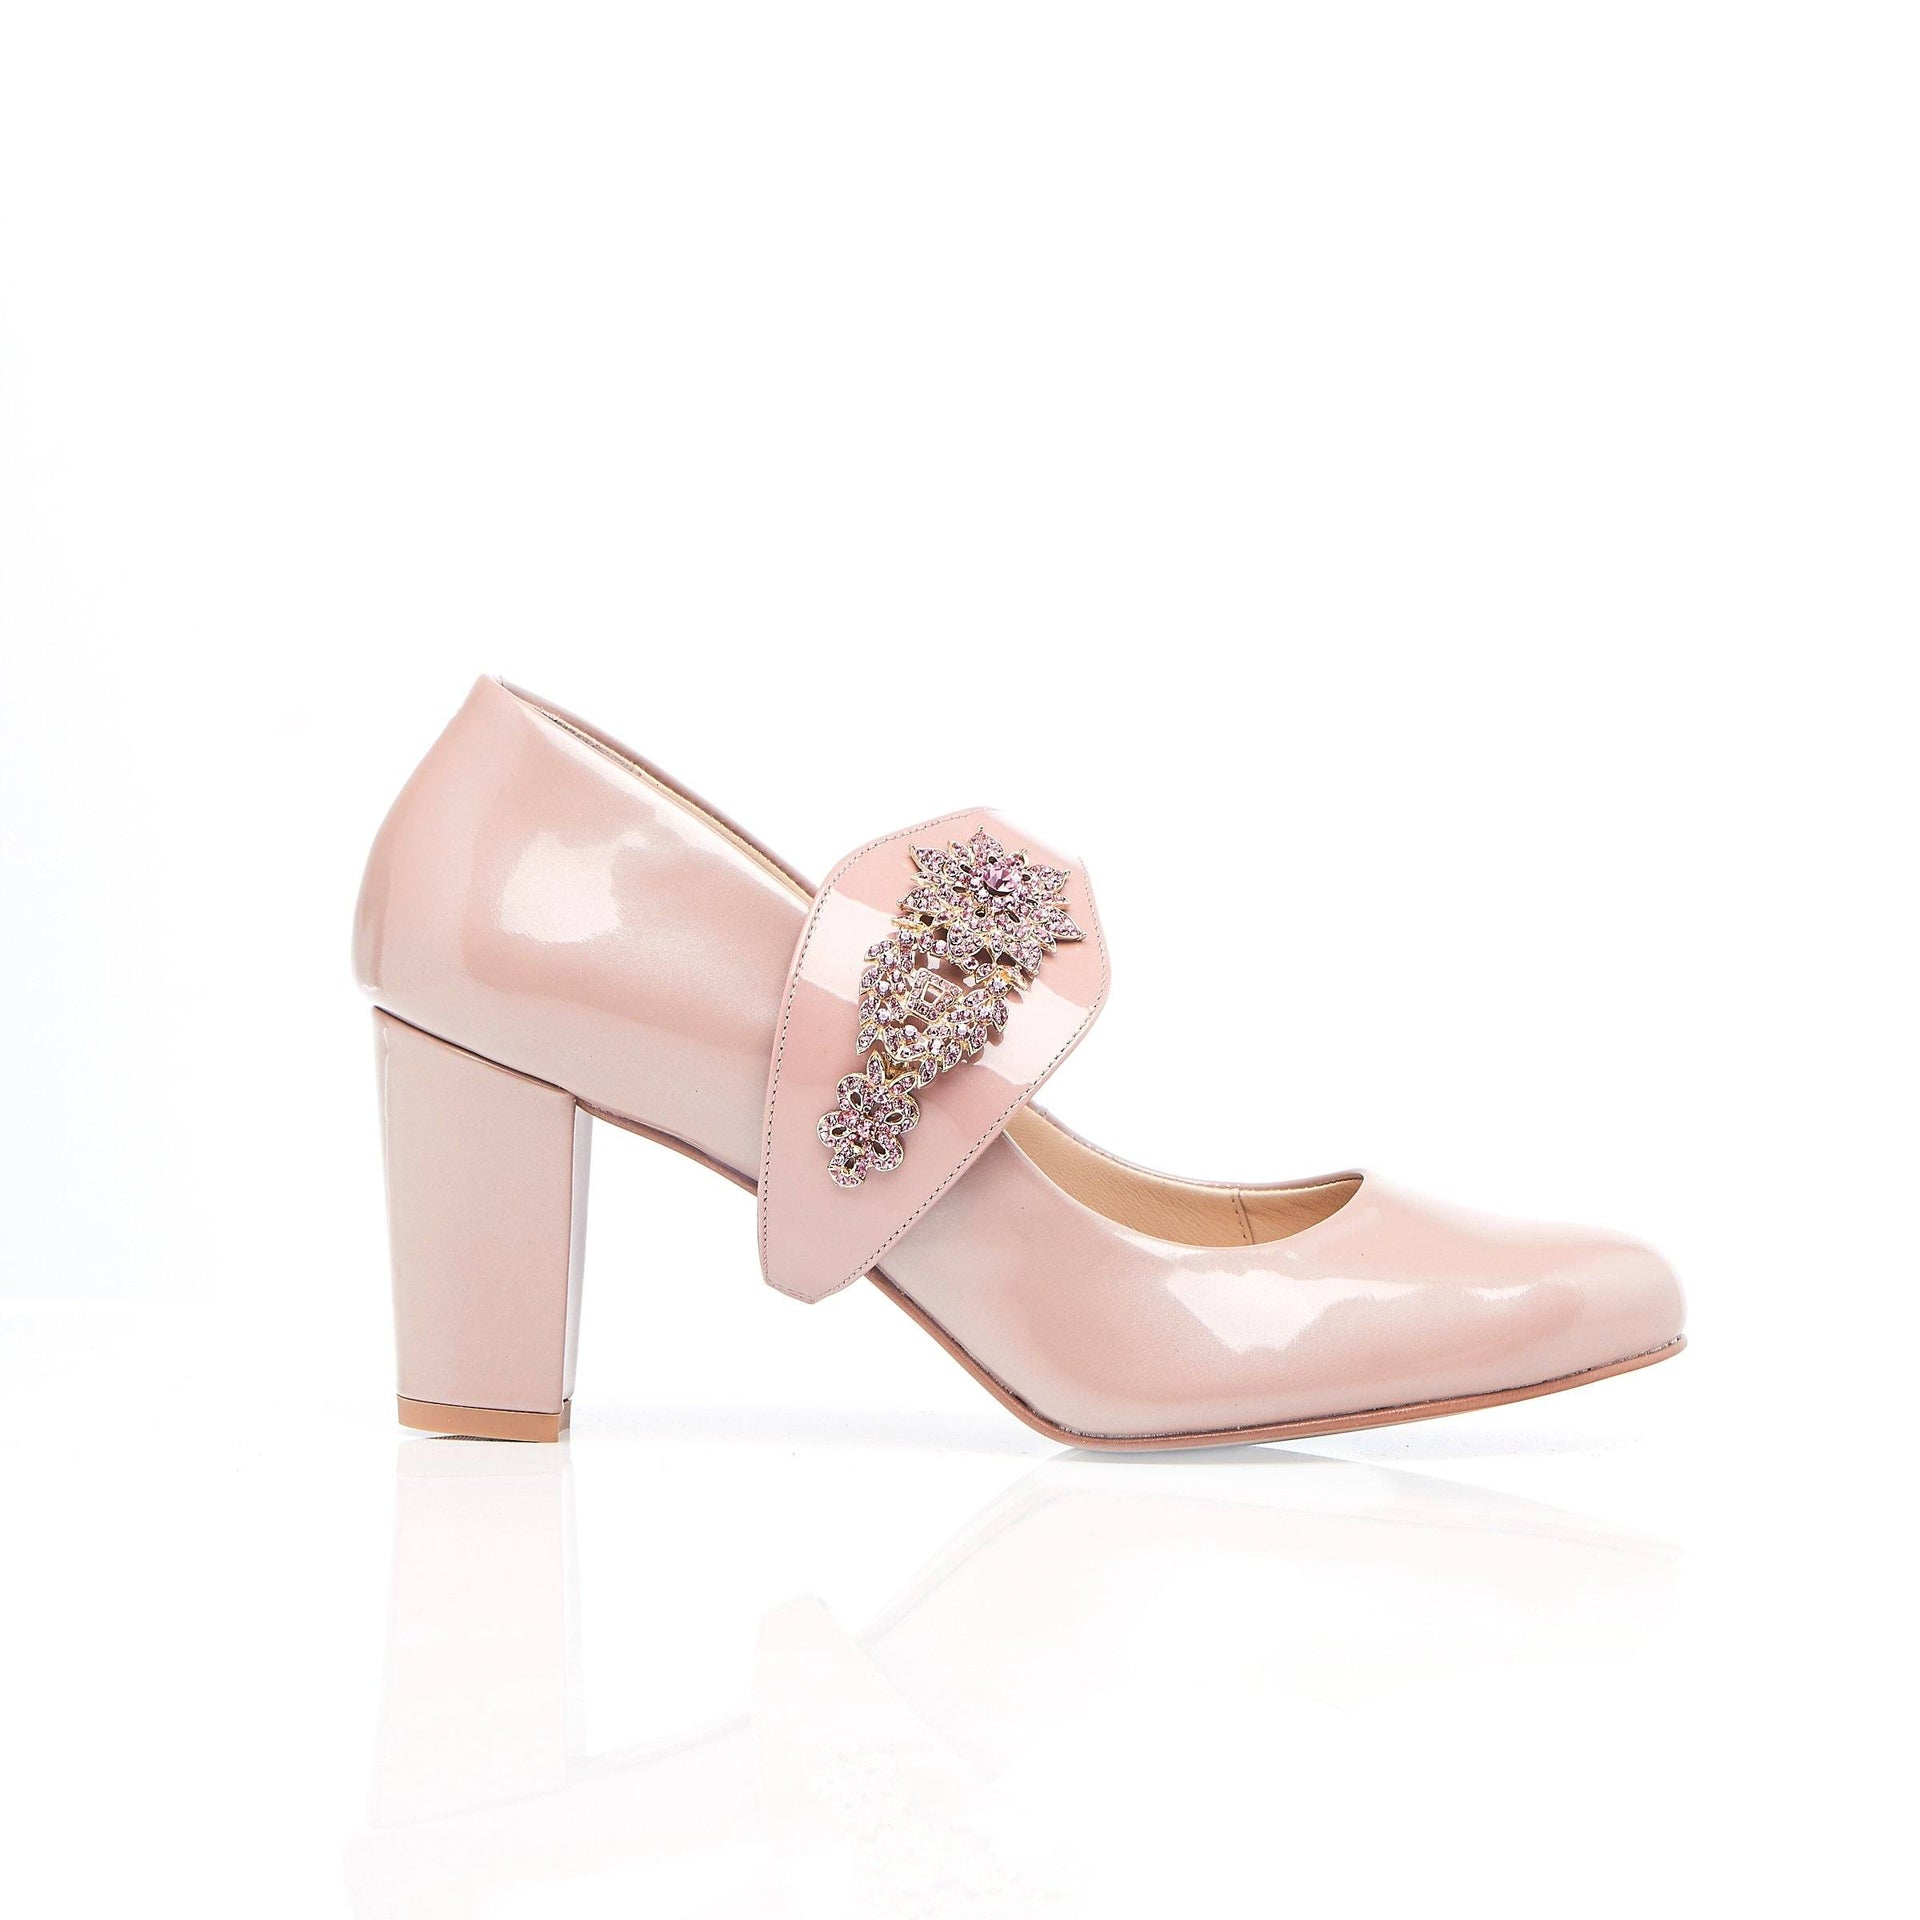 Equally Ever After in Pink Gems - Block Heels - Blush Leather - Shoes by Shaherazad